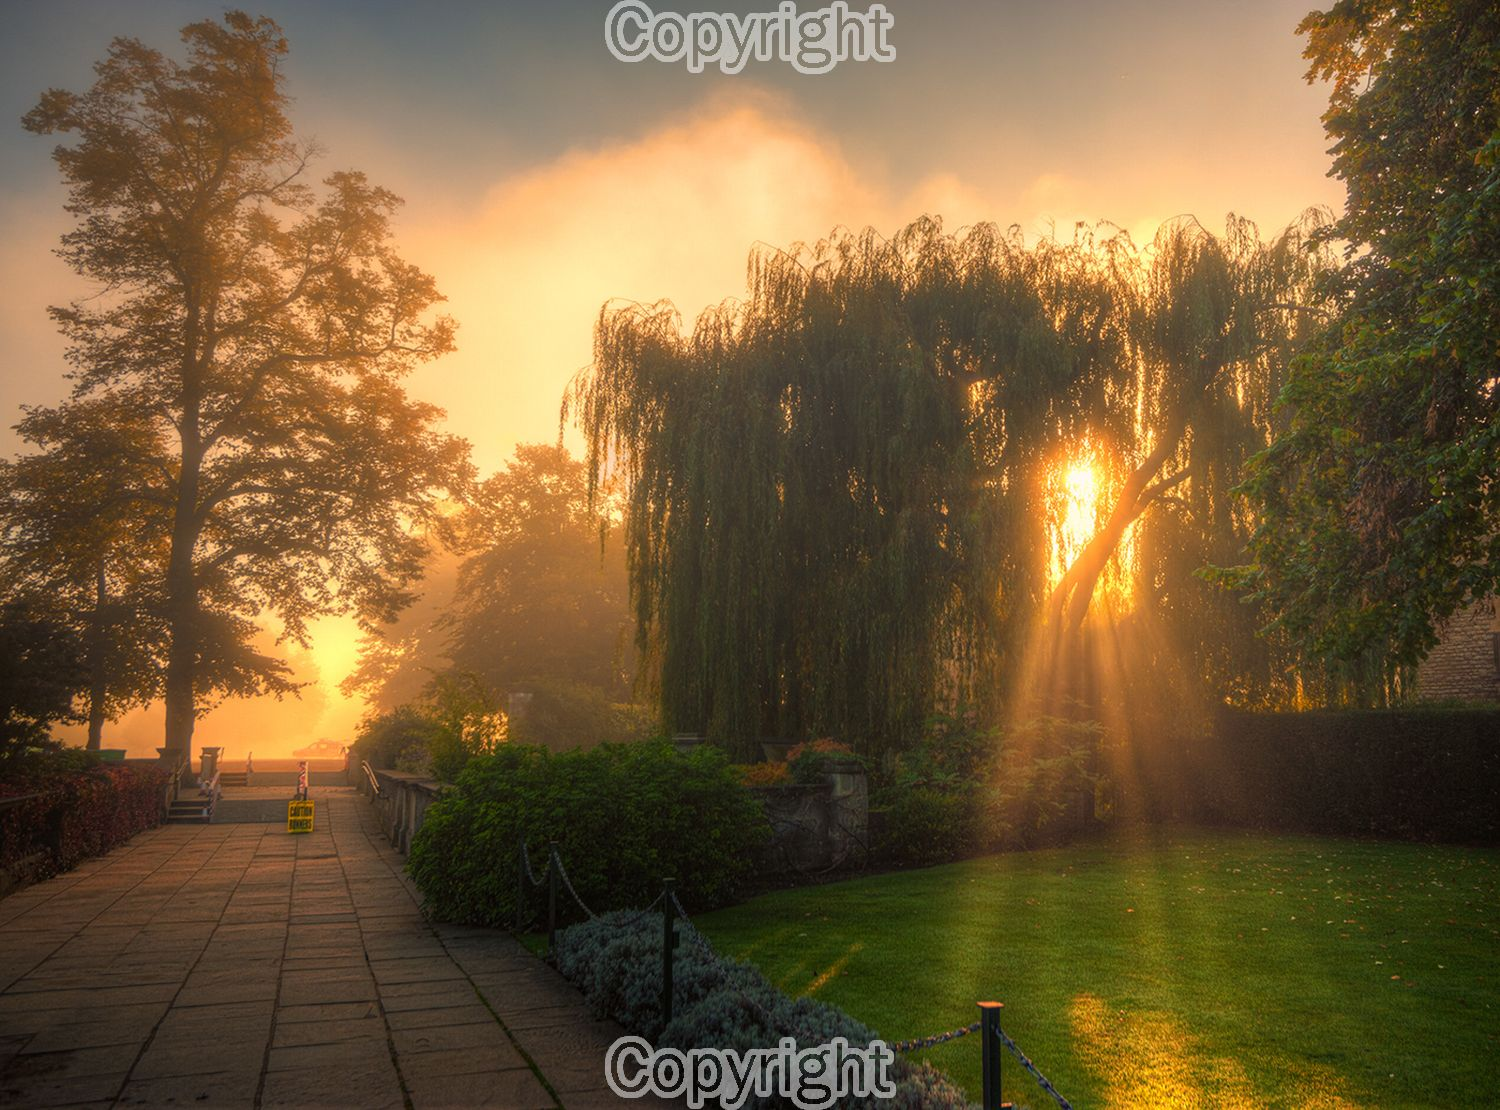 A foggy Autumn sunrise in Oxford.  Equipment: Nikon D700 & Sigma 15-30mm Lens